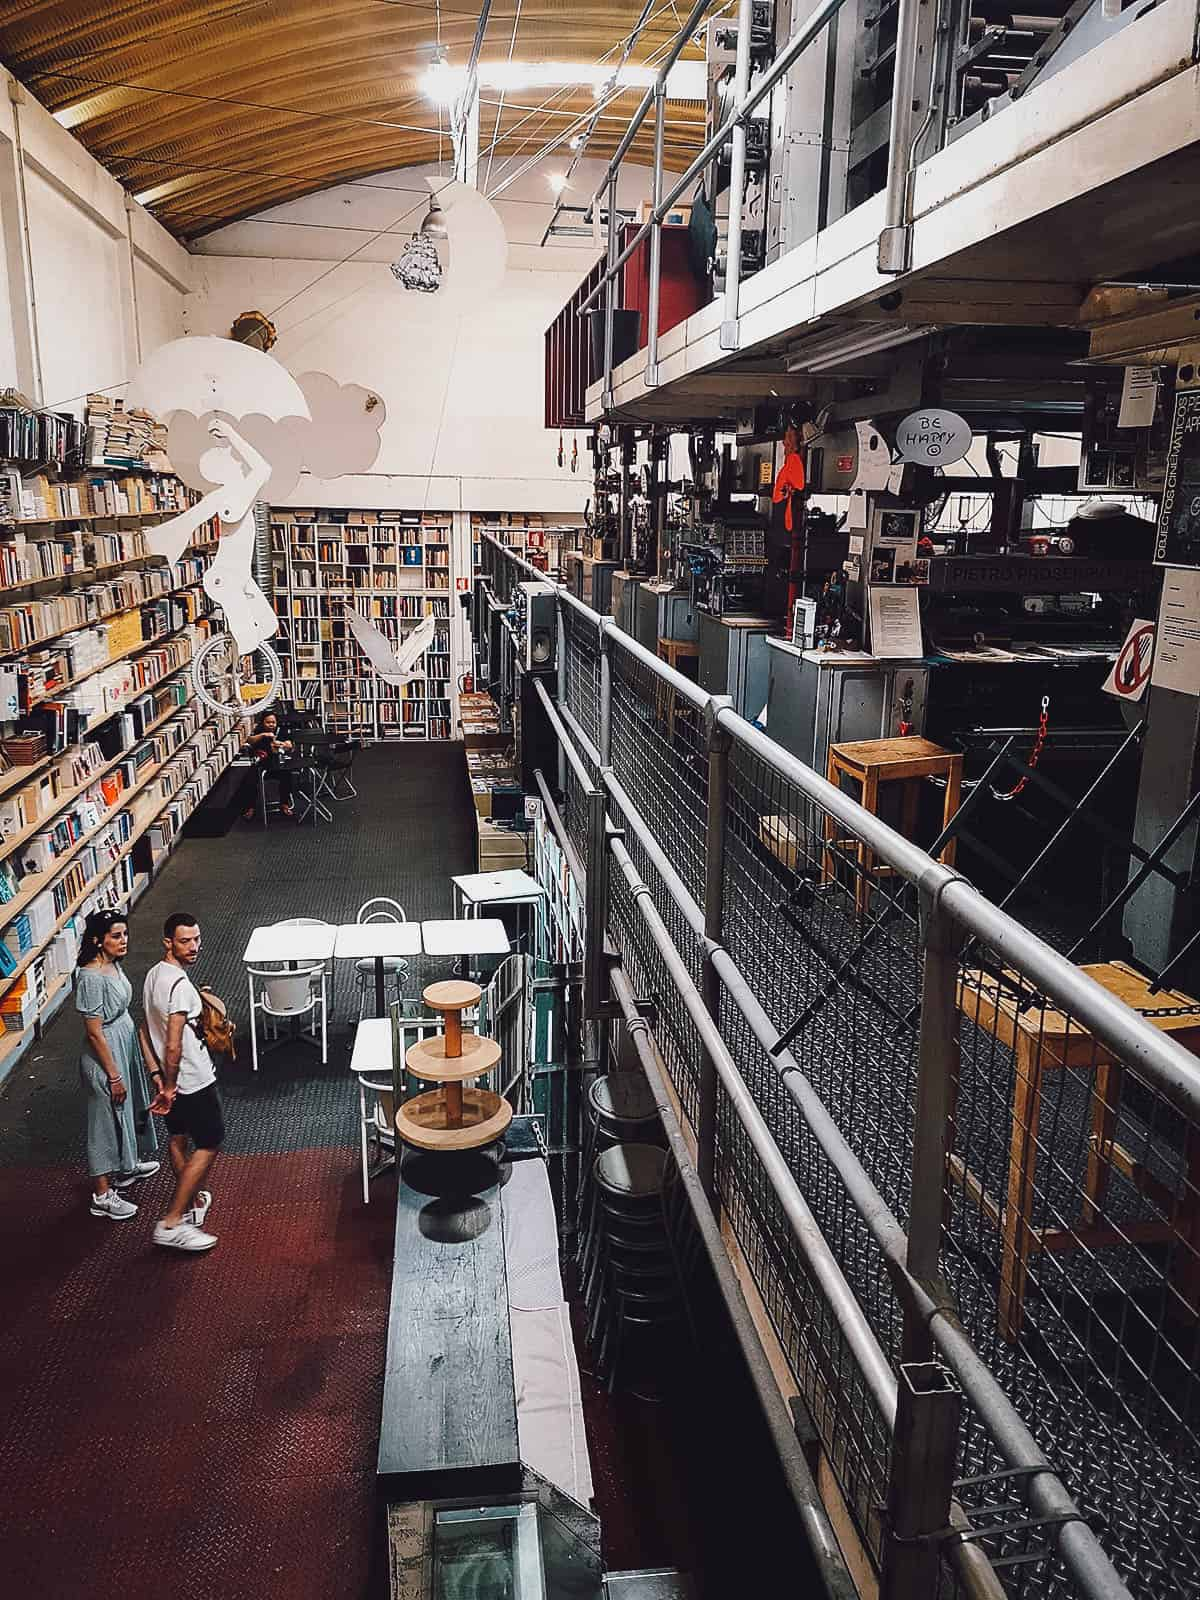 Huge bookshop at an old printing press